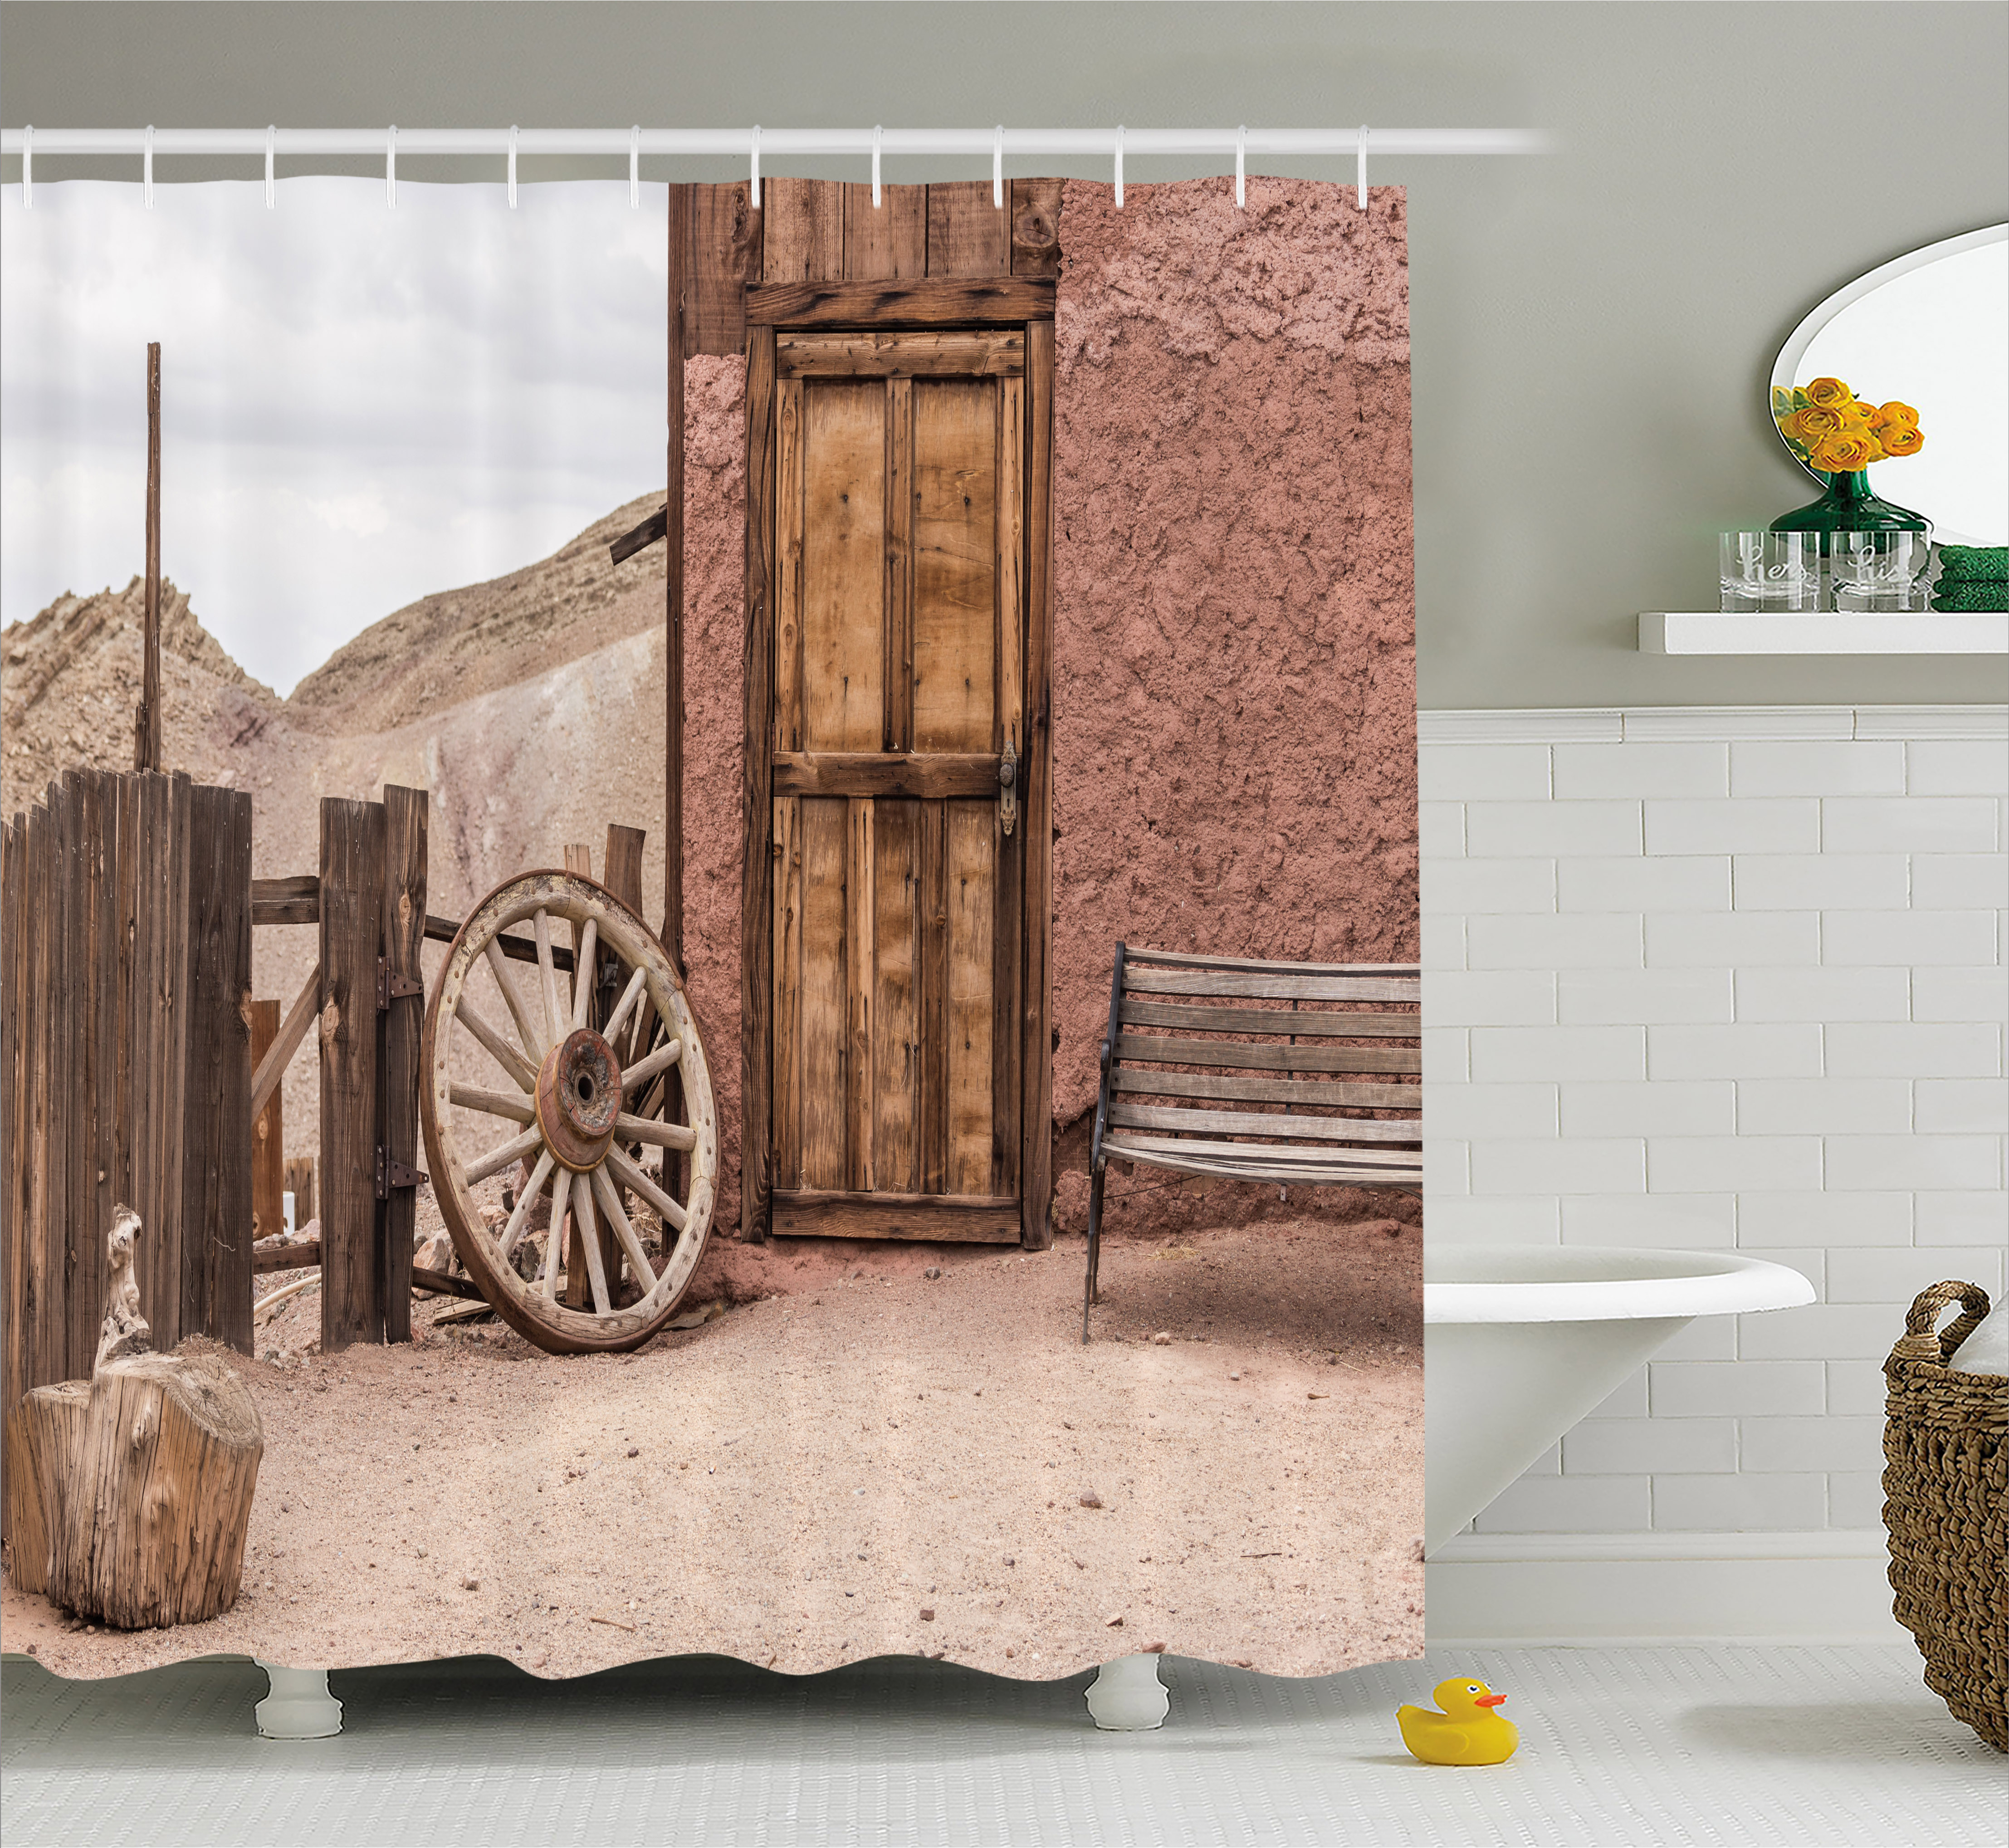 Barn Wood Wagon Wheel Shower Curtain, Abandoned Old Farmhouse Doorway Traditional Rustic Outdoors, Fabric Bathroom Set with Hooks, 69W X 70L Inches, Umber Light Brown, by Ambesonne